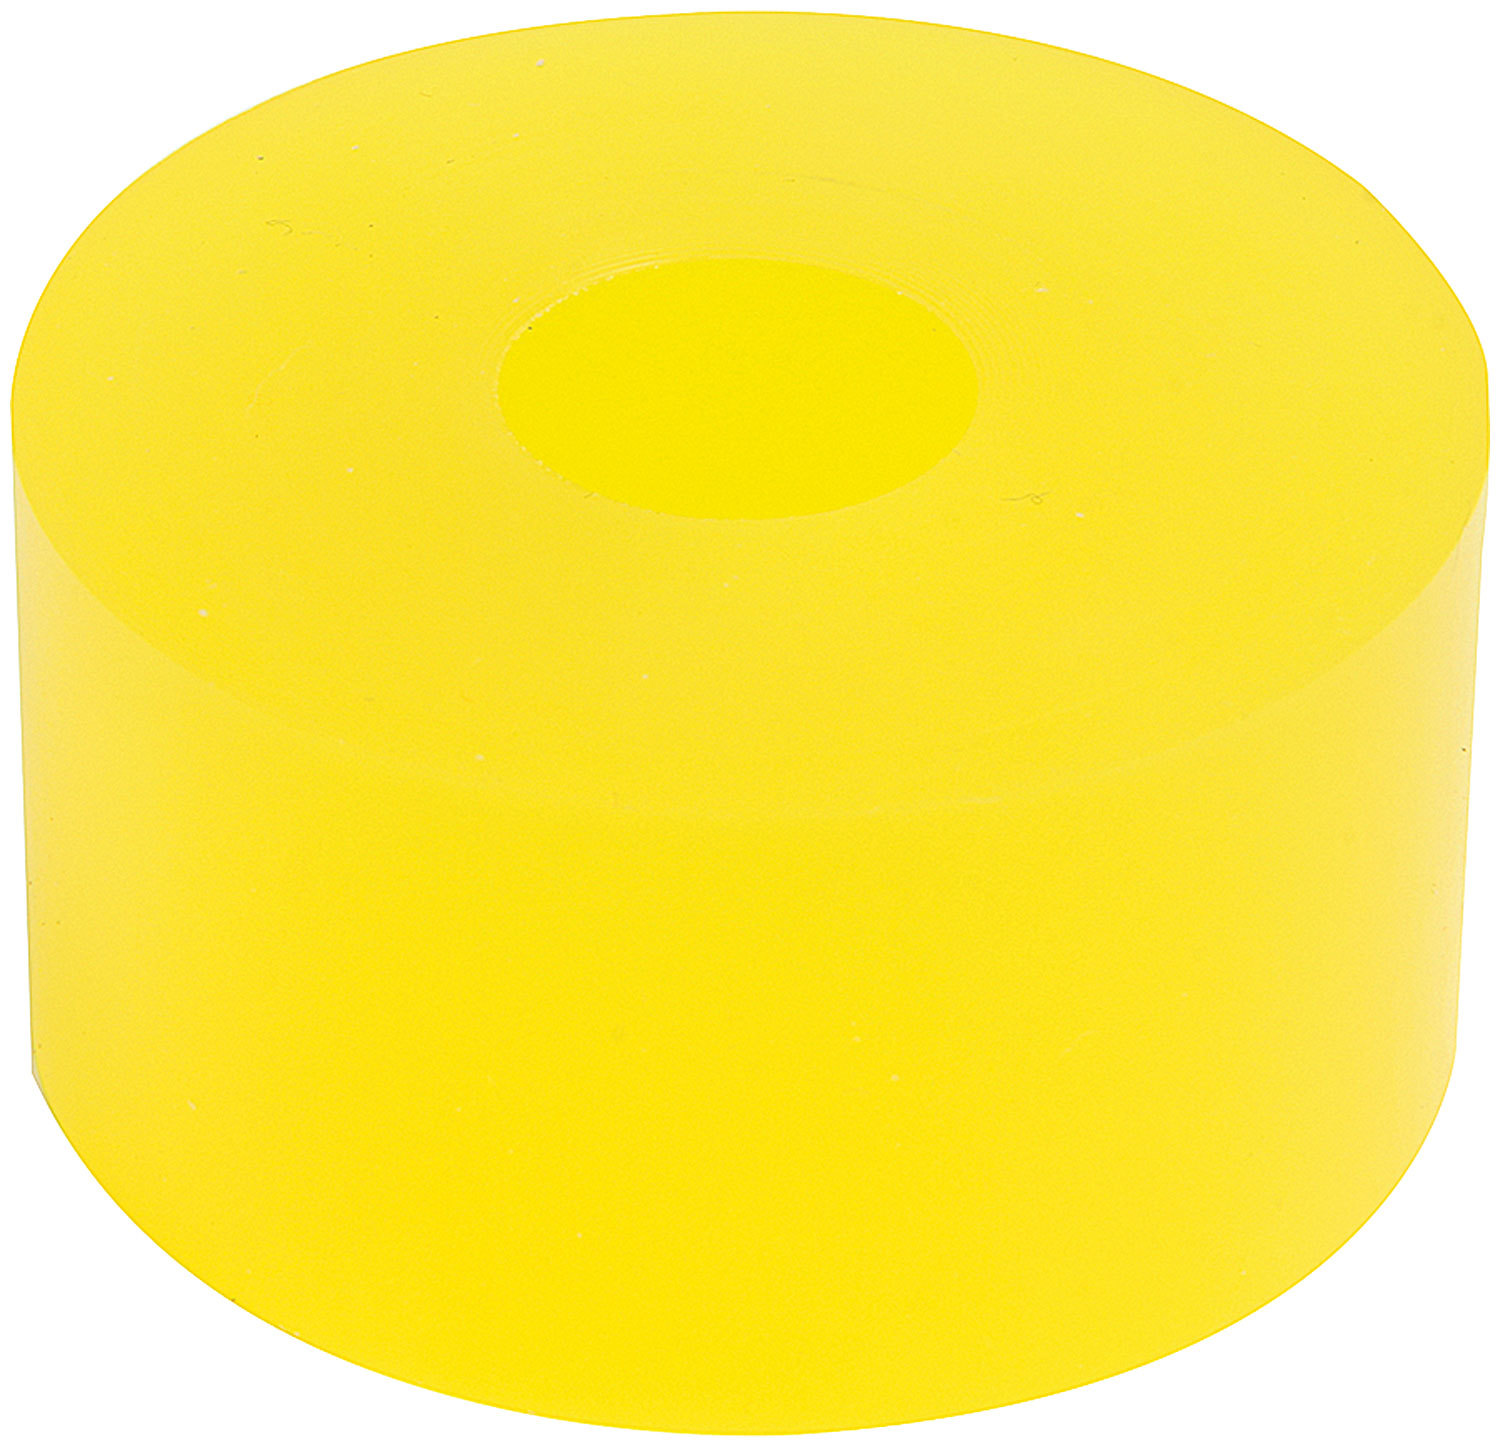 Allstar Performance 64386 Bump Stop Puck, 2 in OD, 1/2 in ID, 1 in Tall, 75 Durometer, Polyurethane, Yellow, 14 mm Shocks, Each